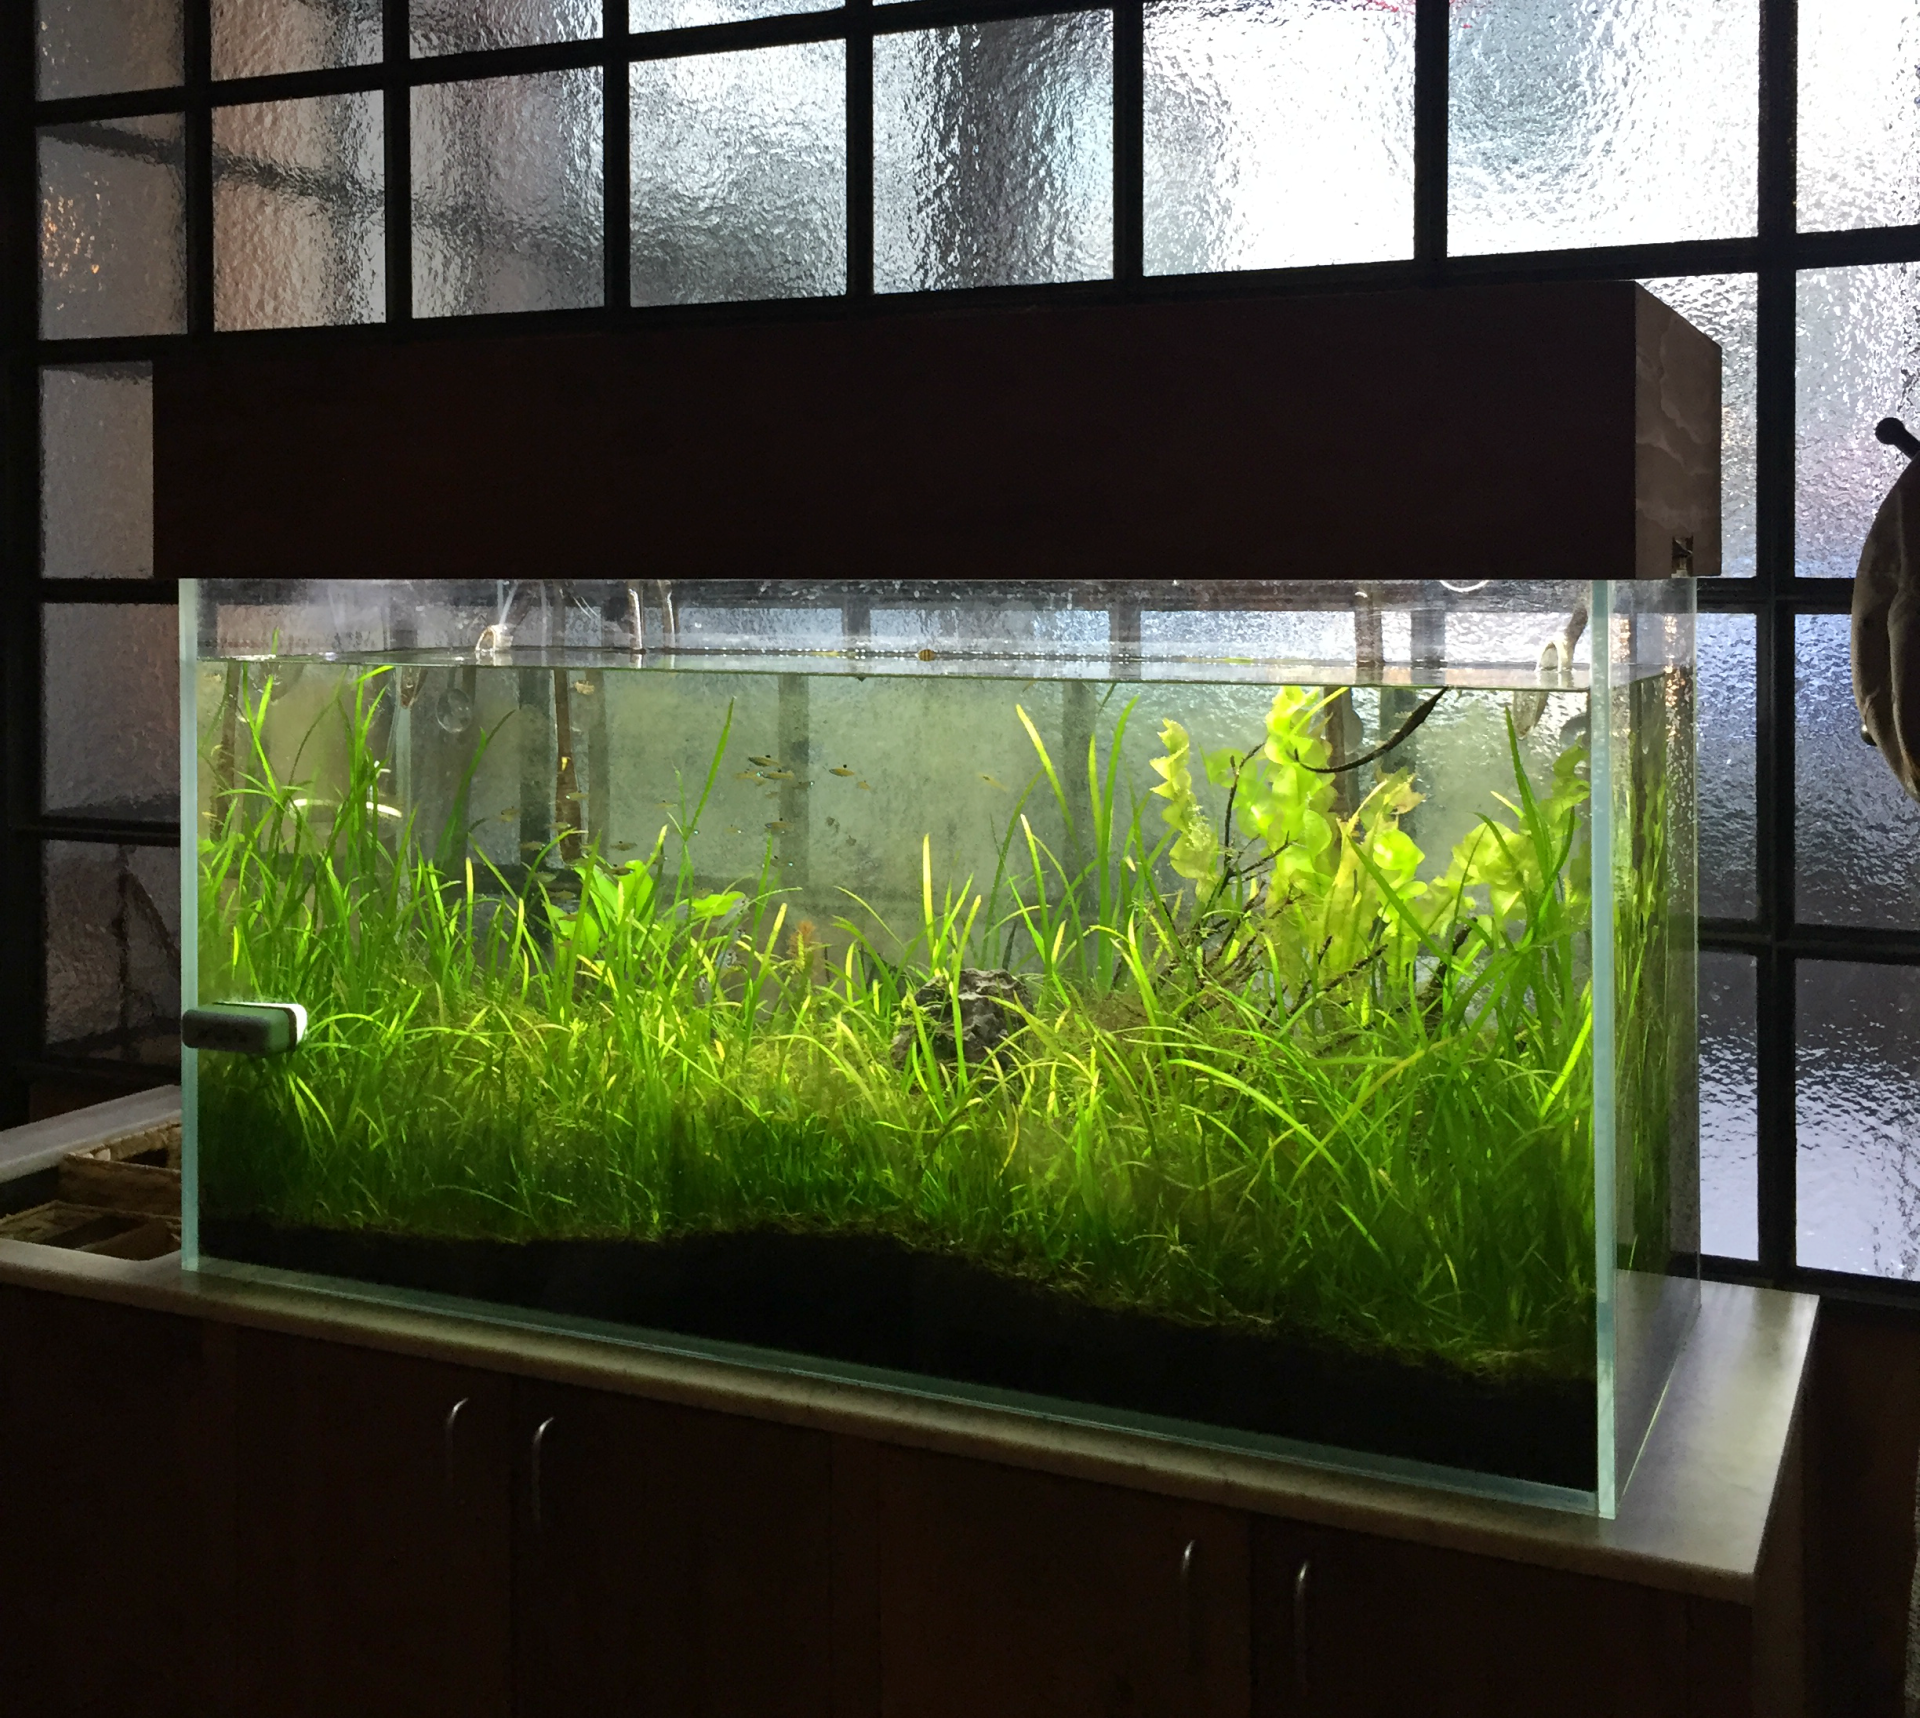 The Perennial has a small fish tank in the restaurant to demonstrate the aquaponic system they use to grow their lettuce.